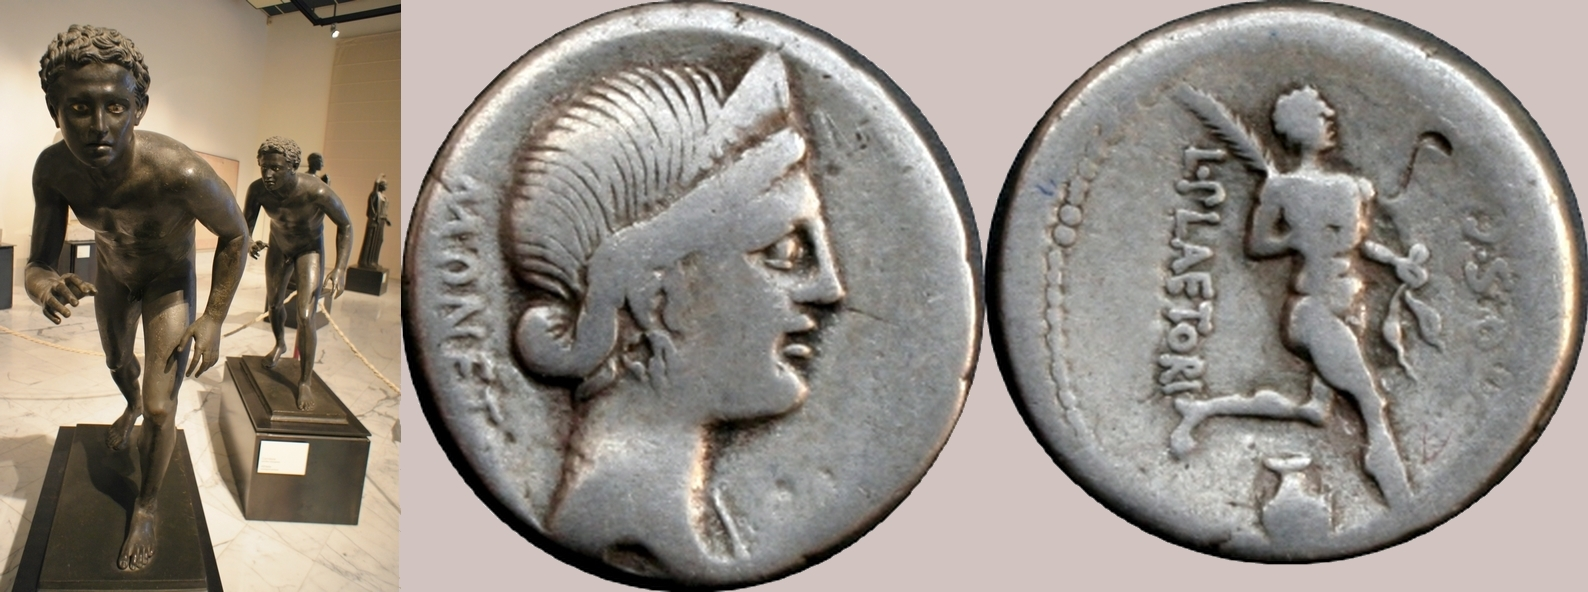 71BC 396/1 coin of Plaetoria athletes series, with two bronze athletes from the Villa of the Papyri Herculaneum